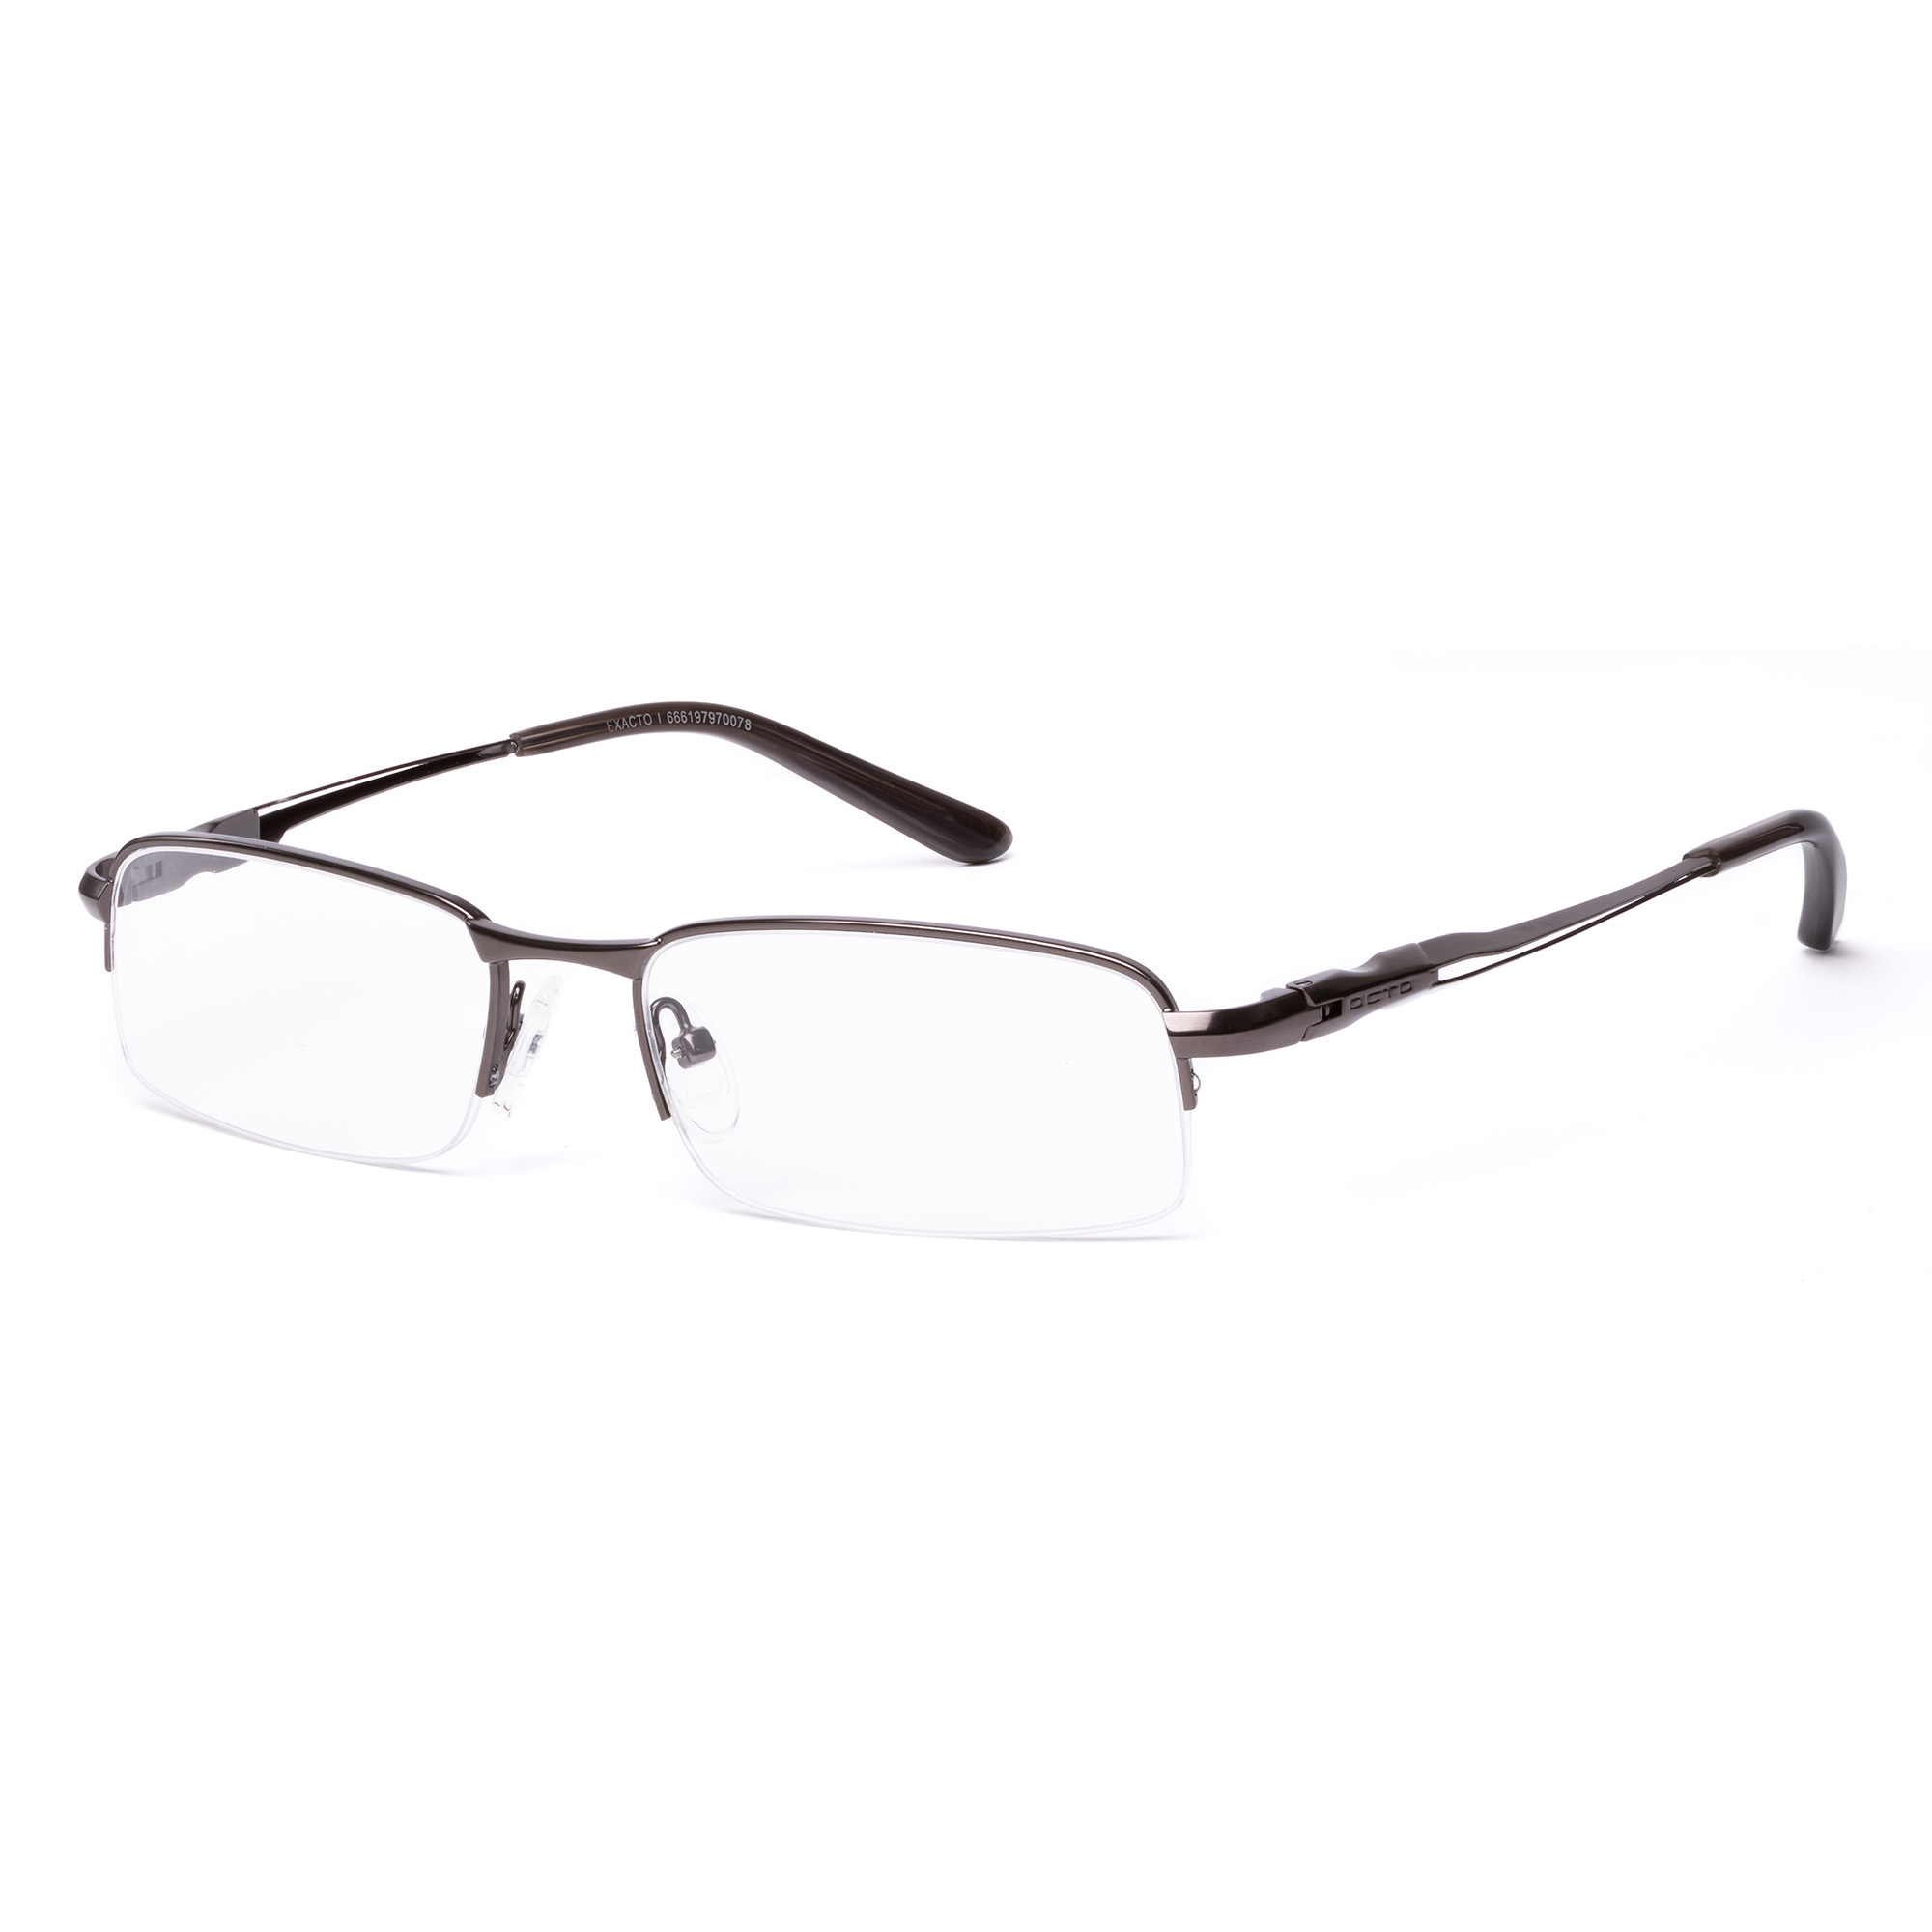 OCTO180 Mens Prescription Glasses, Exacto I Lt. Mgun/Gun - Walmart.com